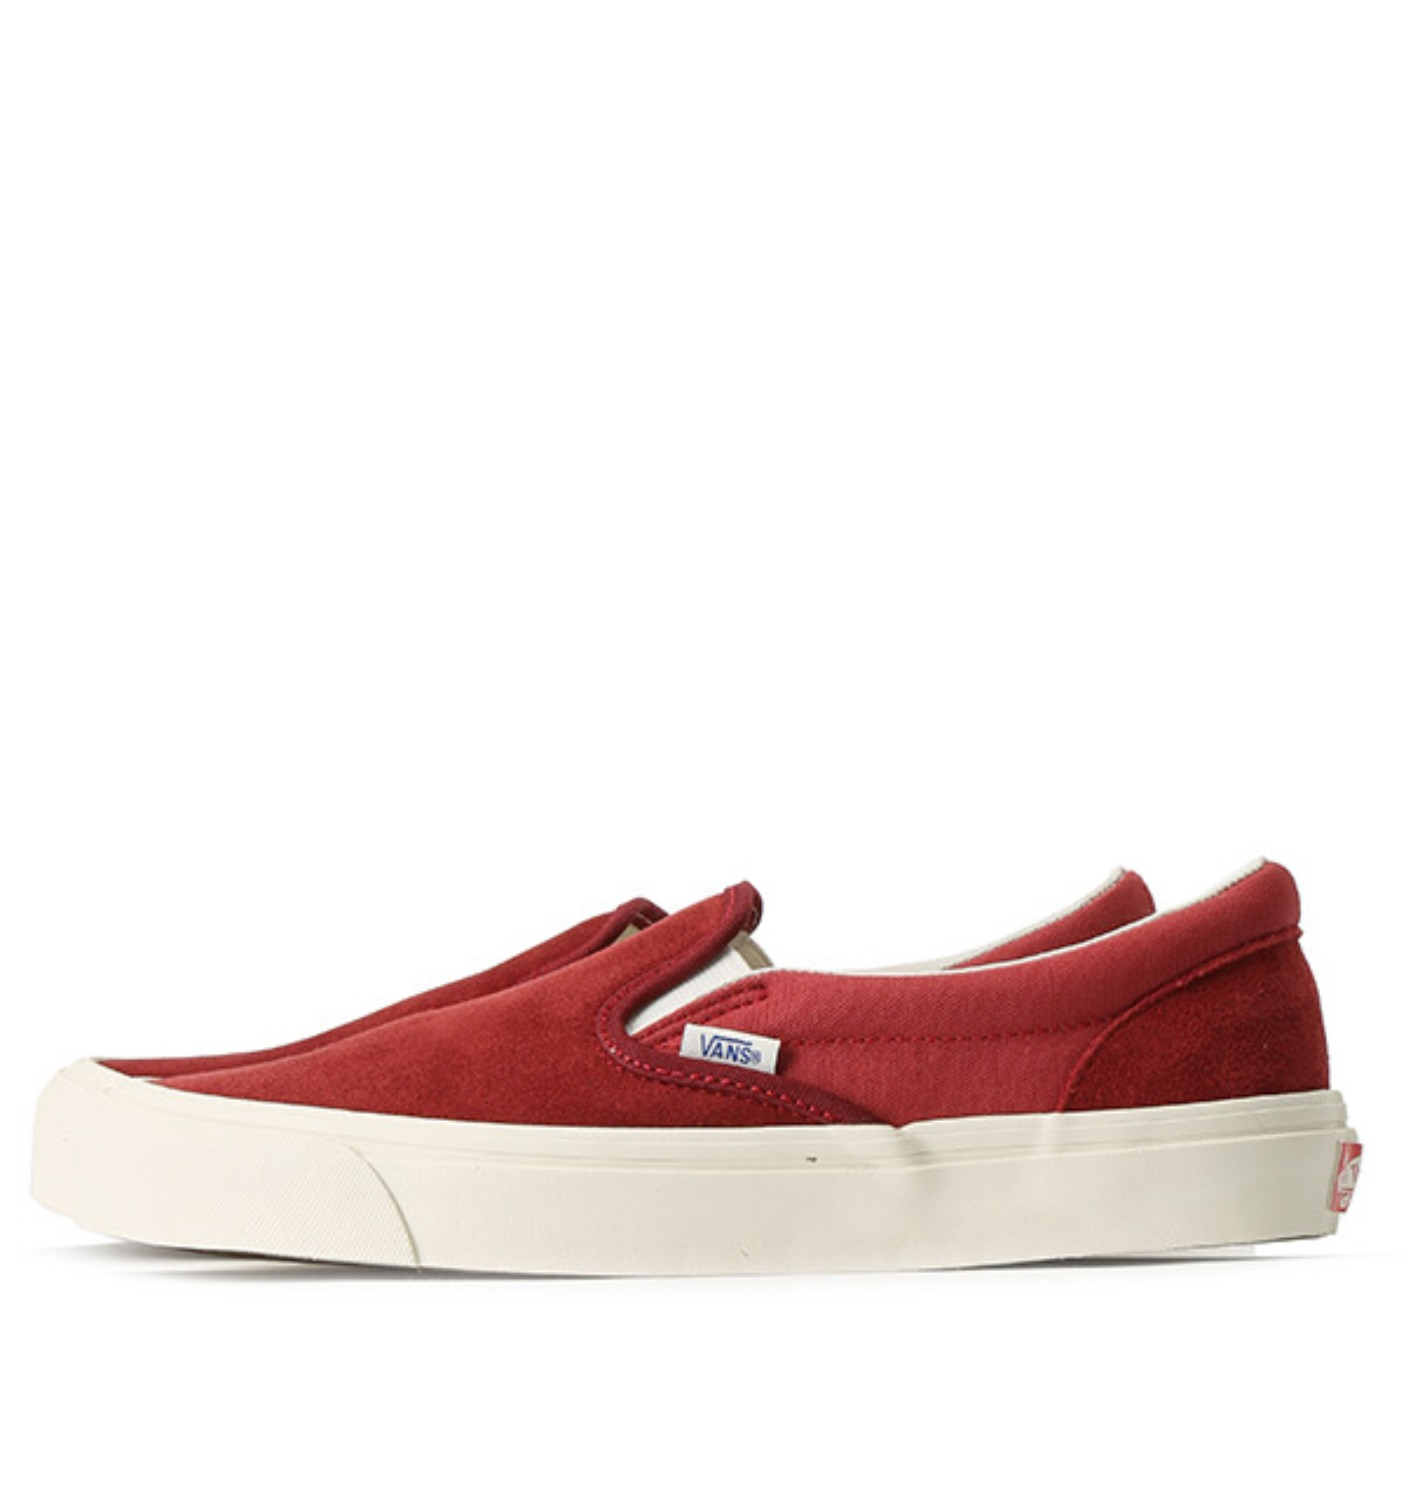 OG CLASSIC SLIP-ON LX(SUEDE/CANVAS)SUNDRIED TOMATO/MINERAL RED (VN000UDFUA11)